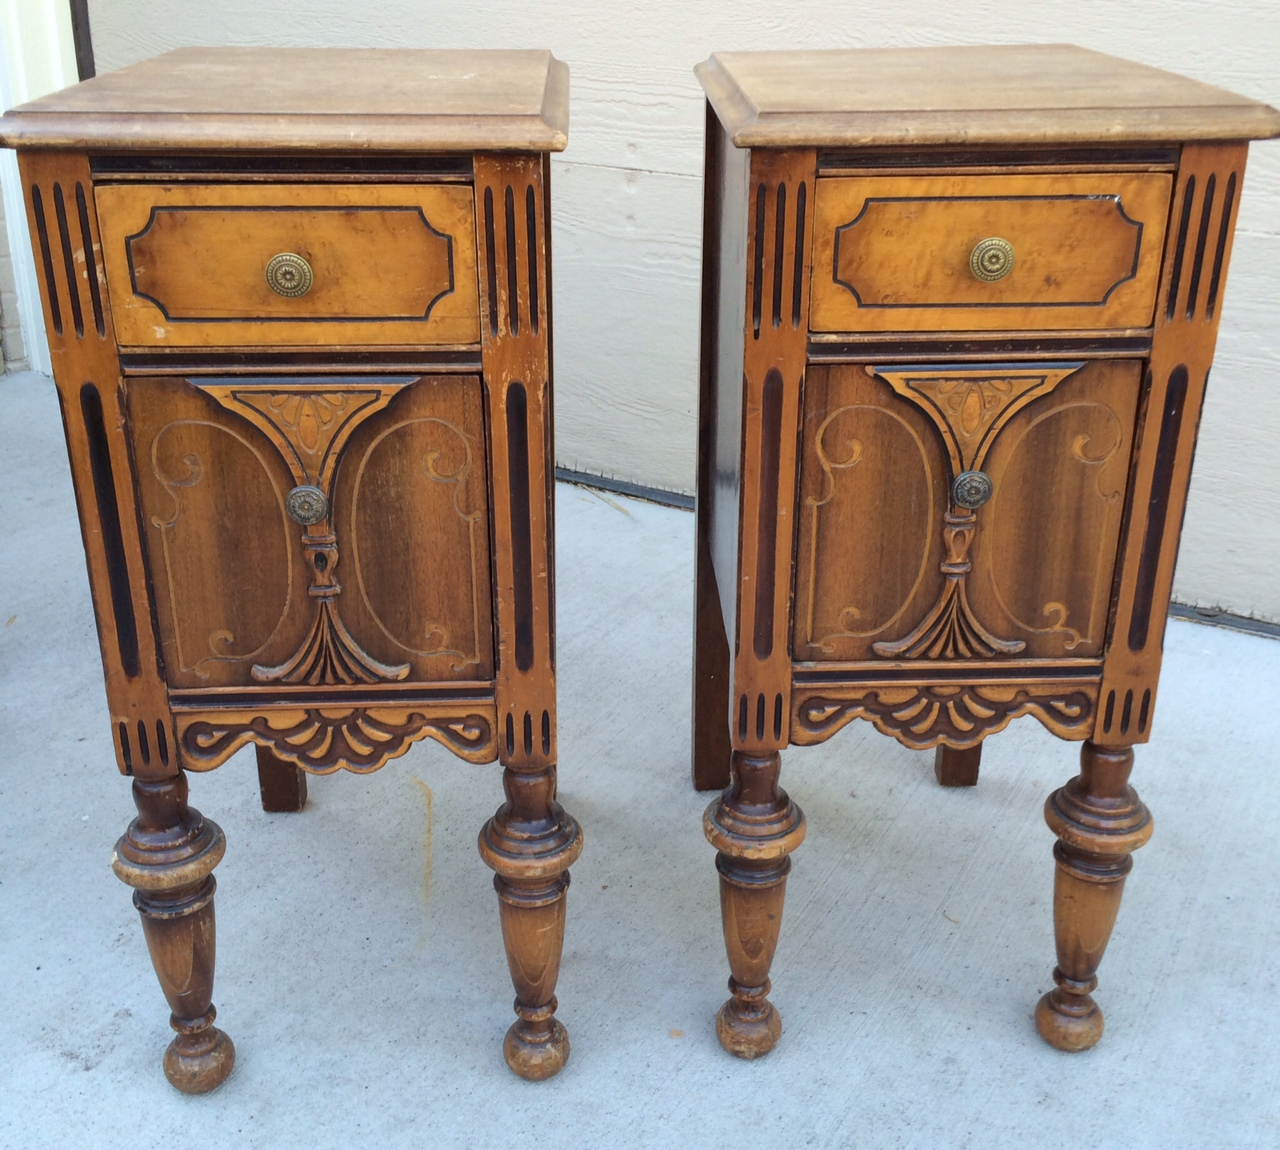 Give your furniture an antiqued or distressed look ladulcelavie - These Great Antique Side Tables Were Done For A Customer In Annie Sloan Florence Distressed To